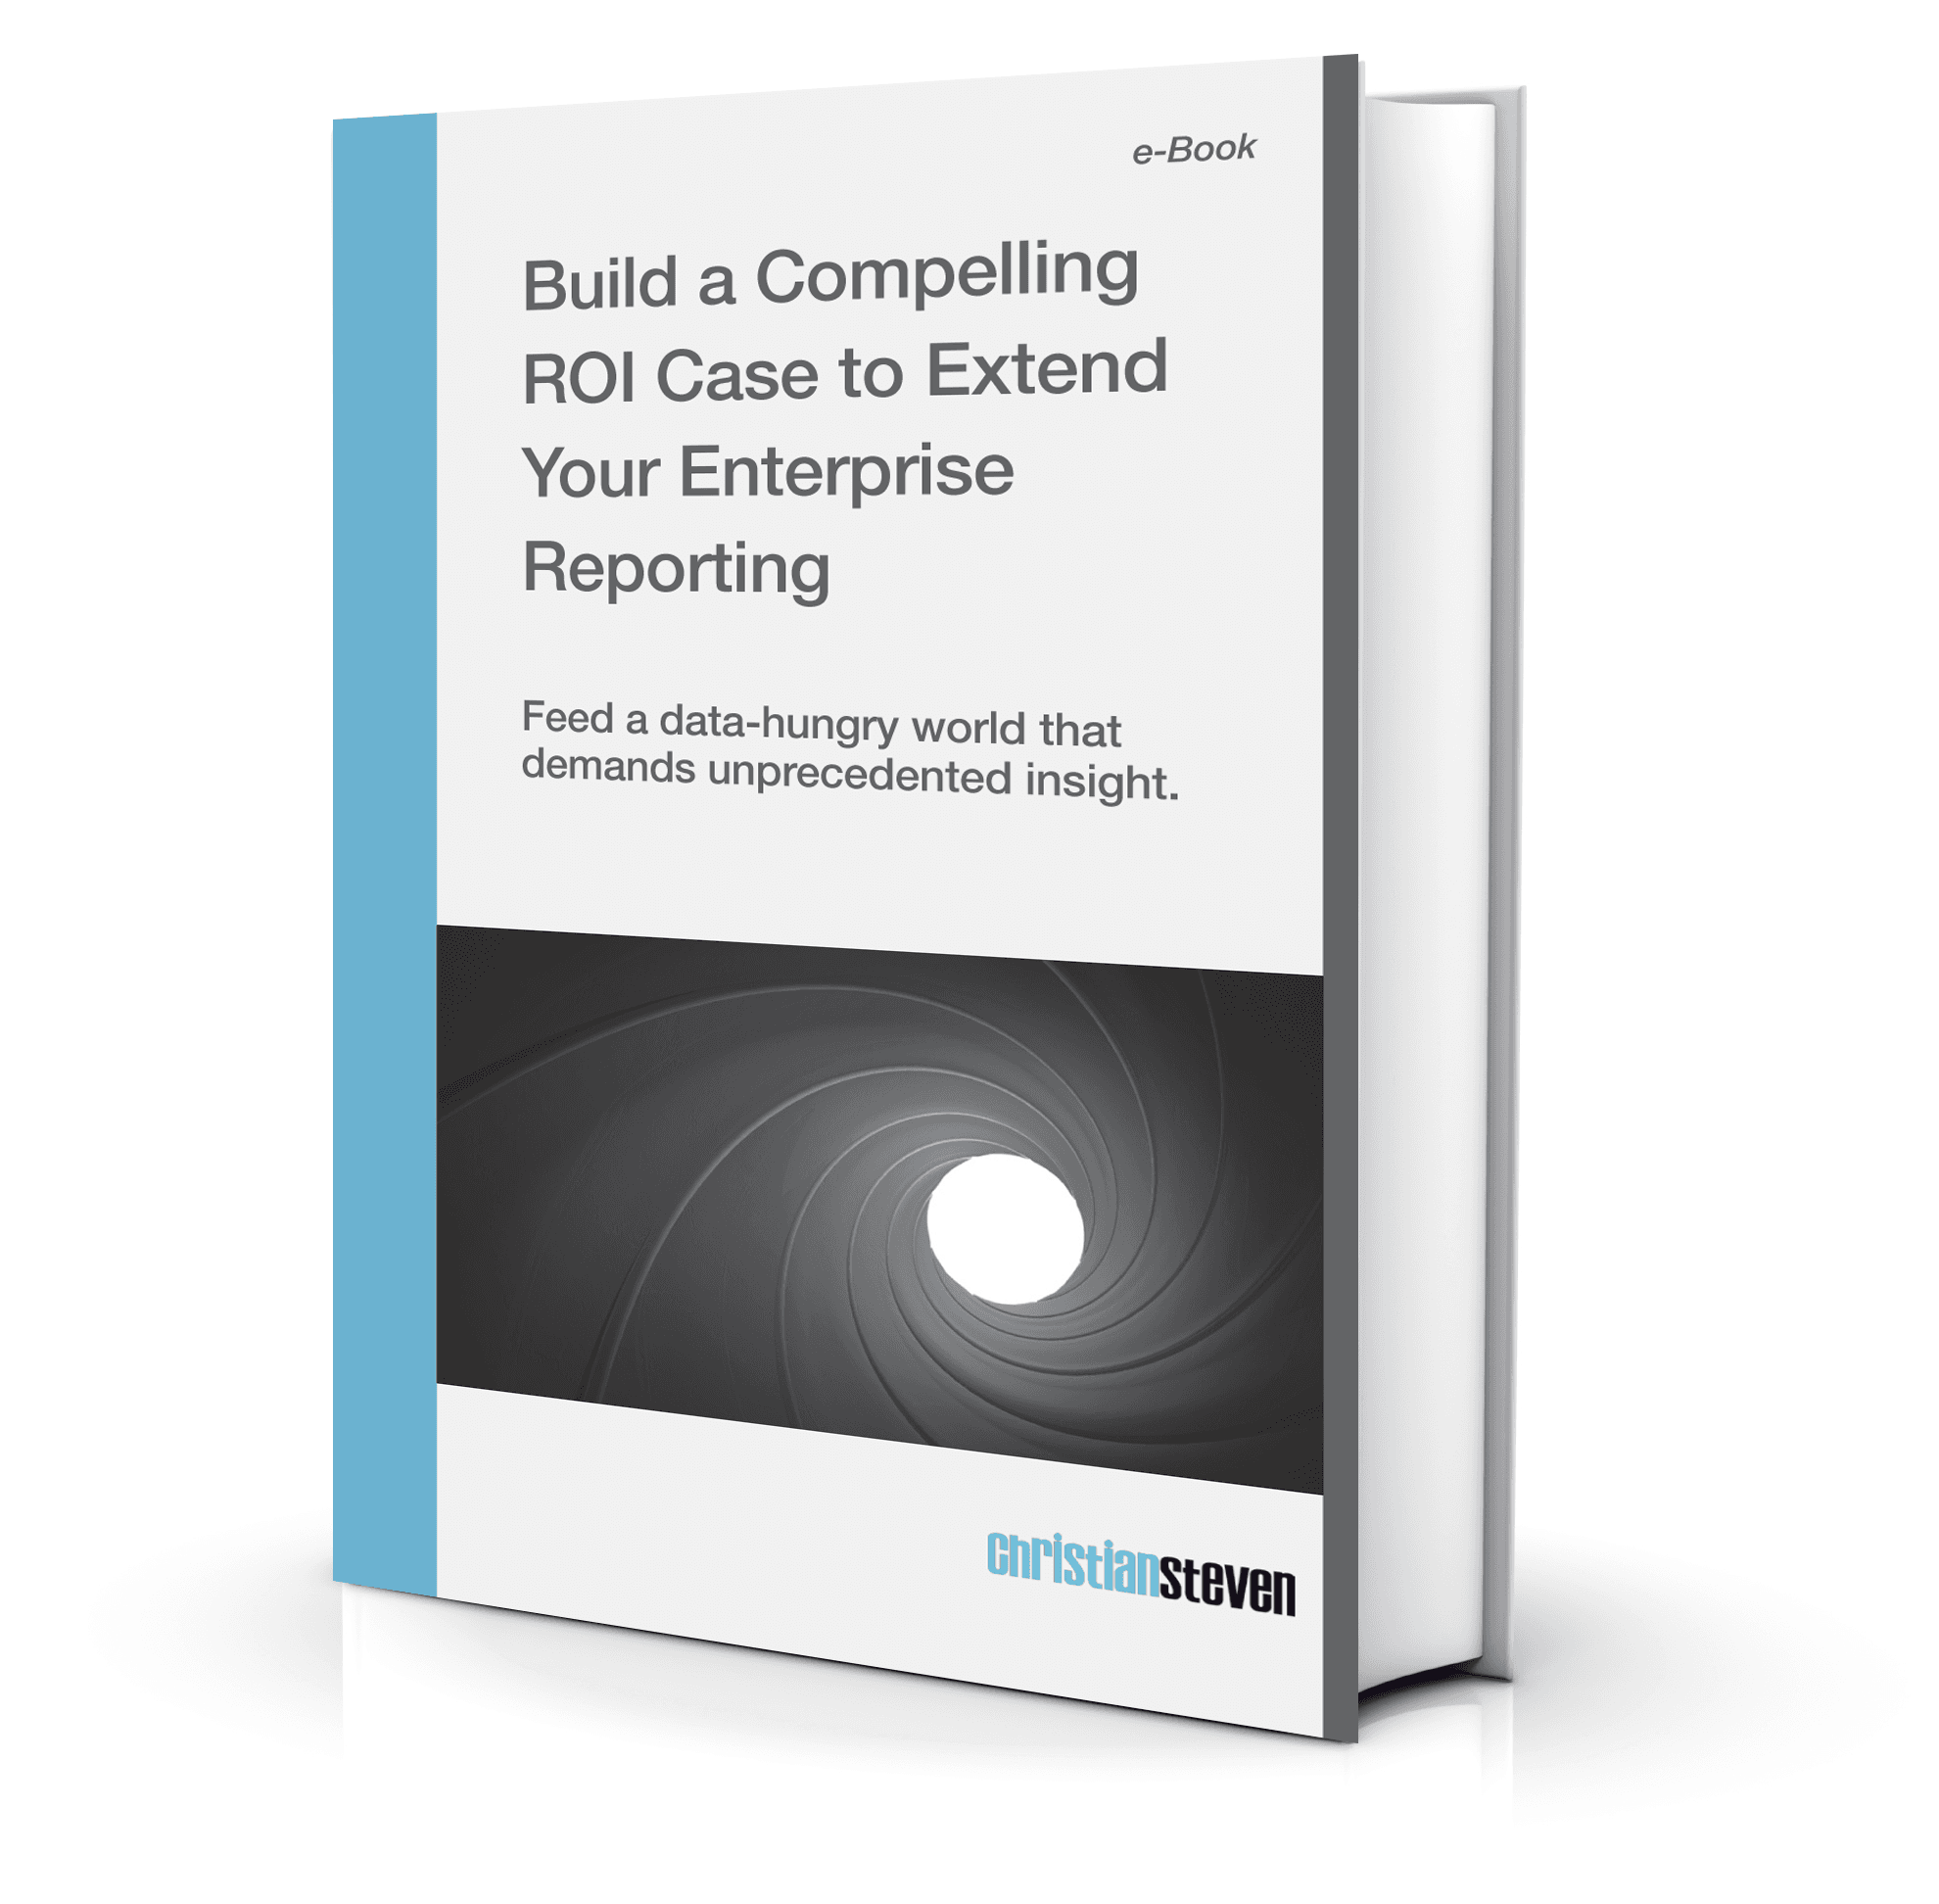 ROI Case to Extend BI Reporting